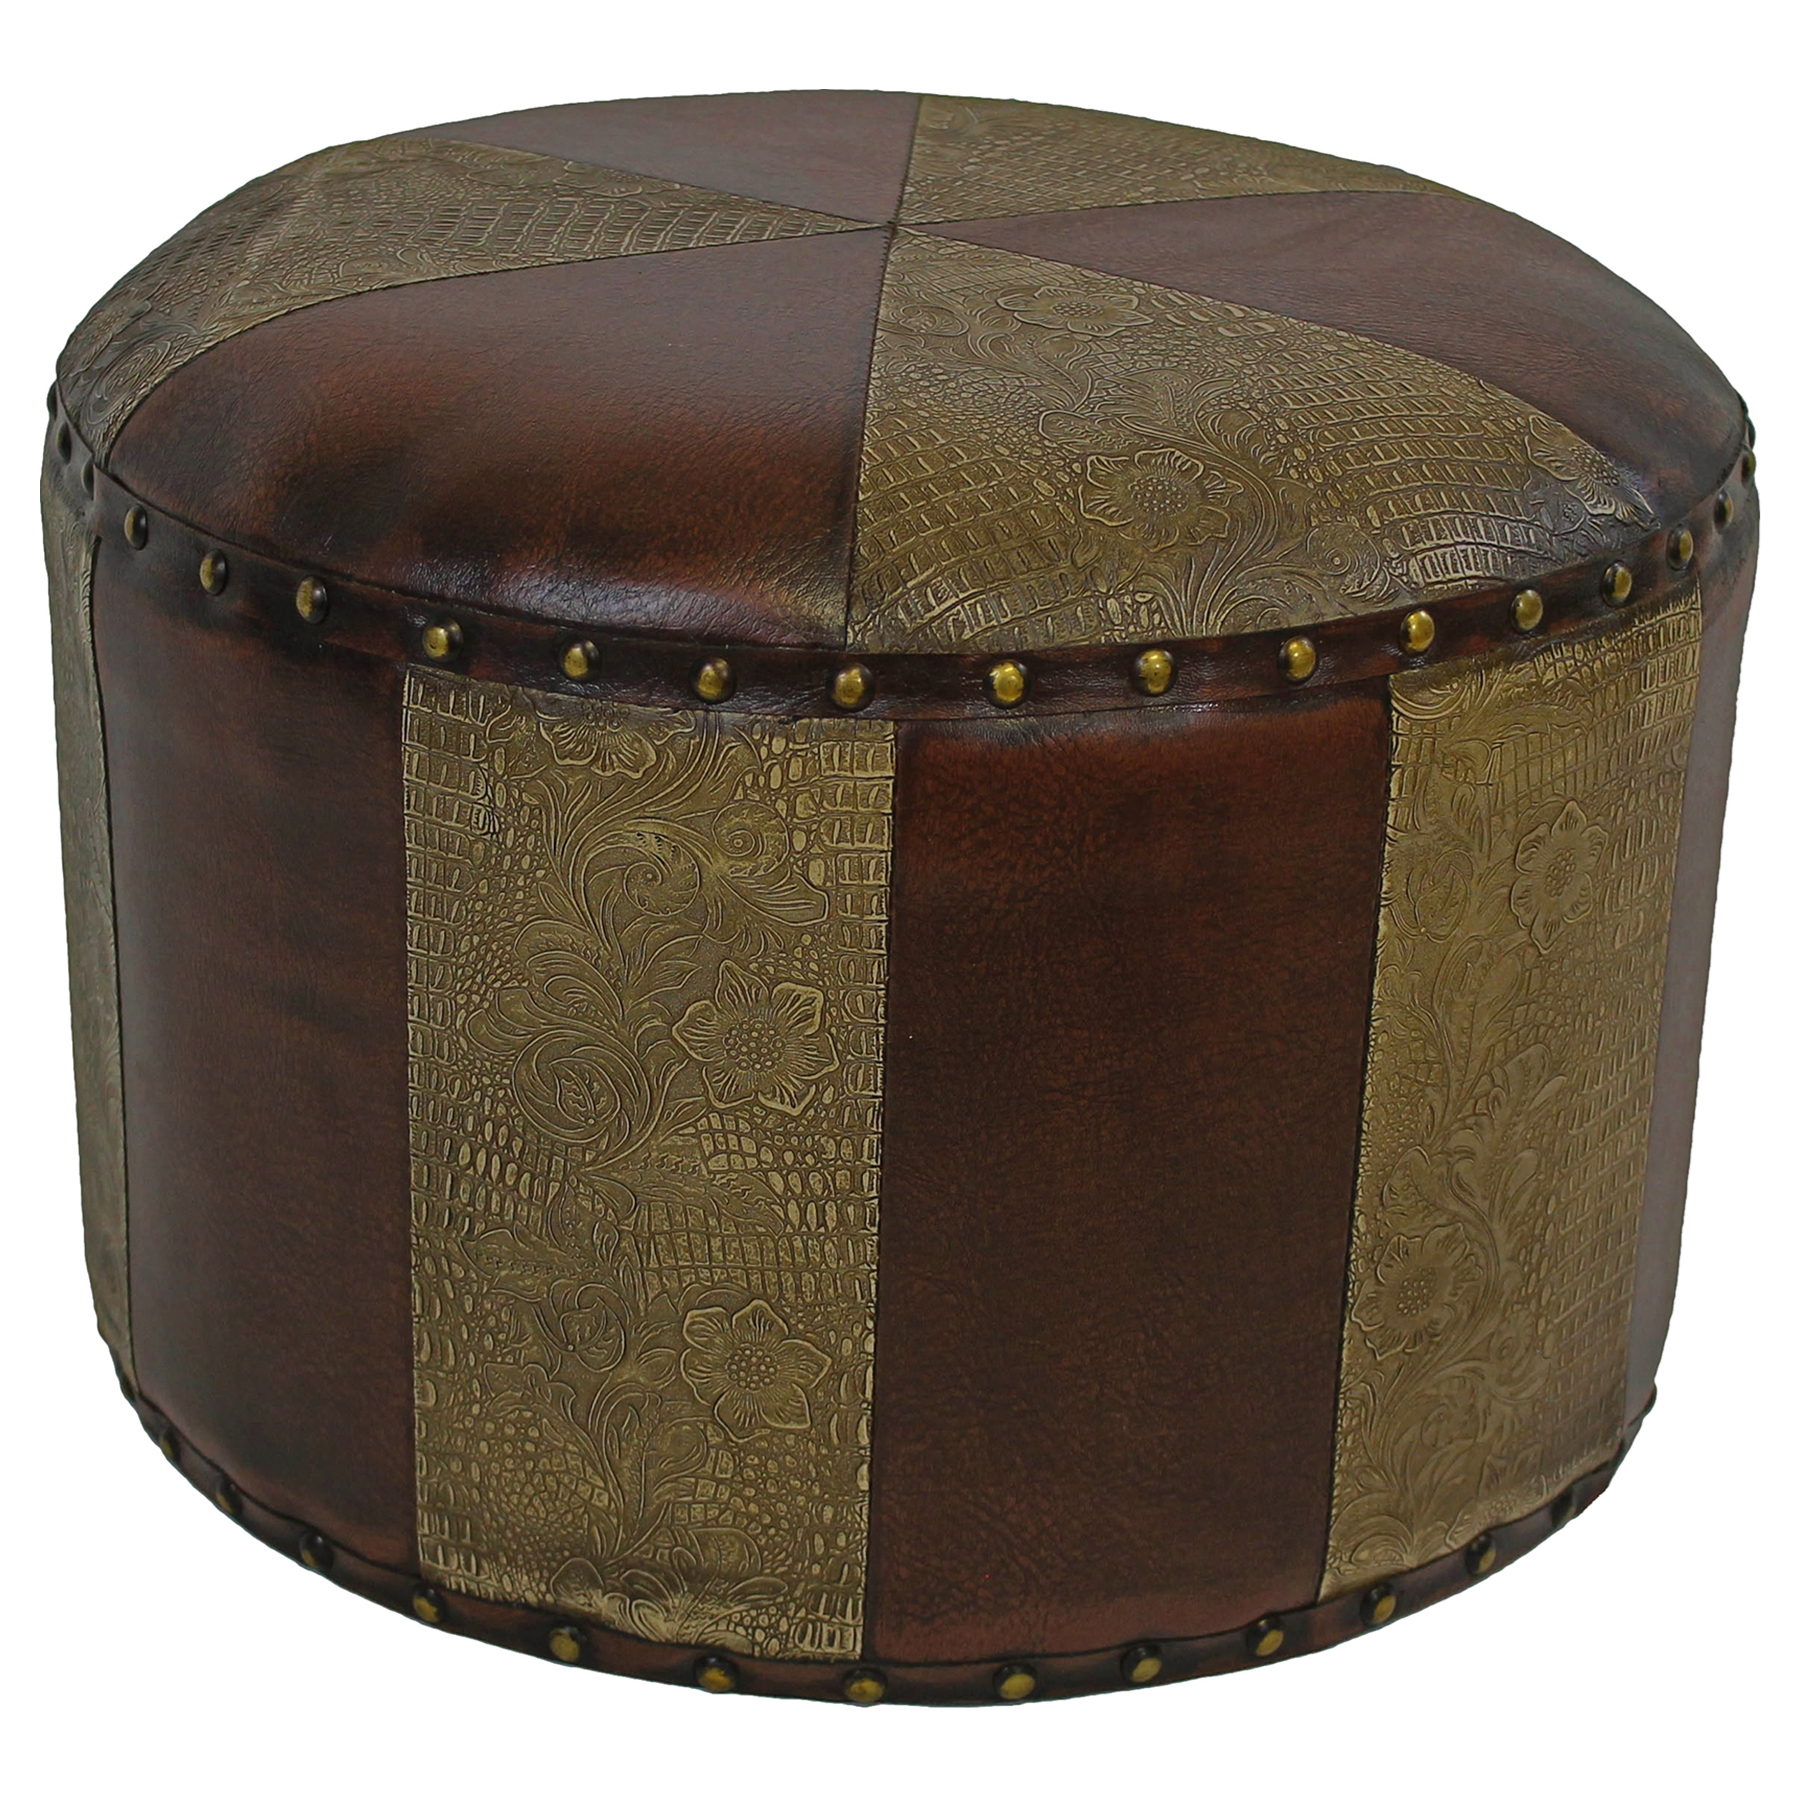 Paulette Small Patterned Round Ottoman